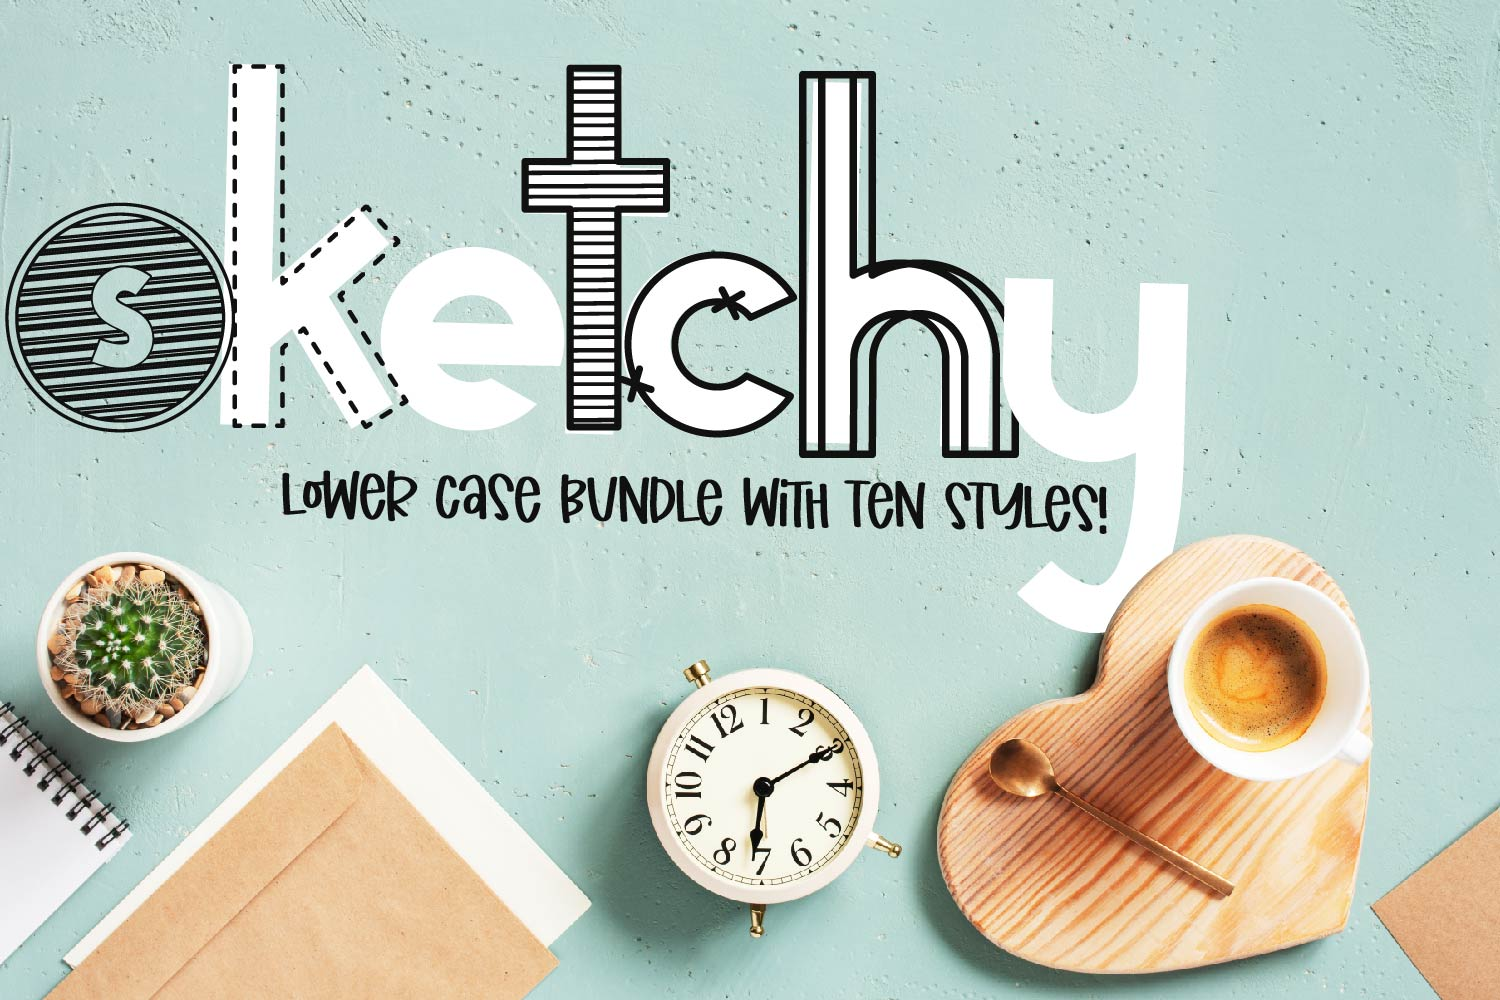 Sketchy - A Lower Case Bundle With 10 Styles! example image 1